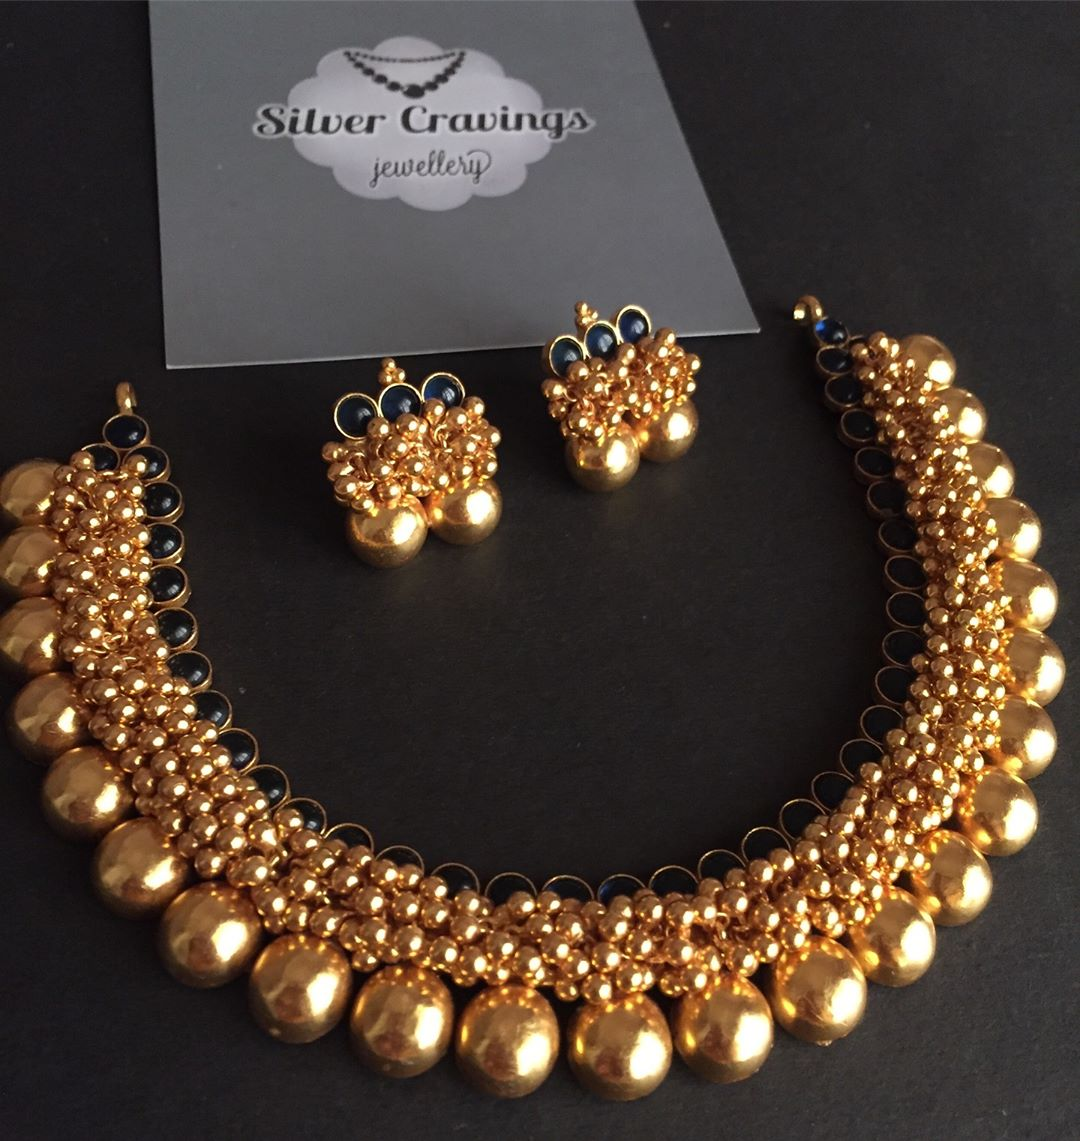 Thushi Style Necklace From Silver Cravings Jewellery